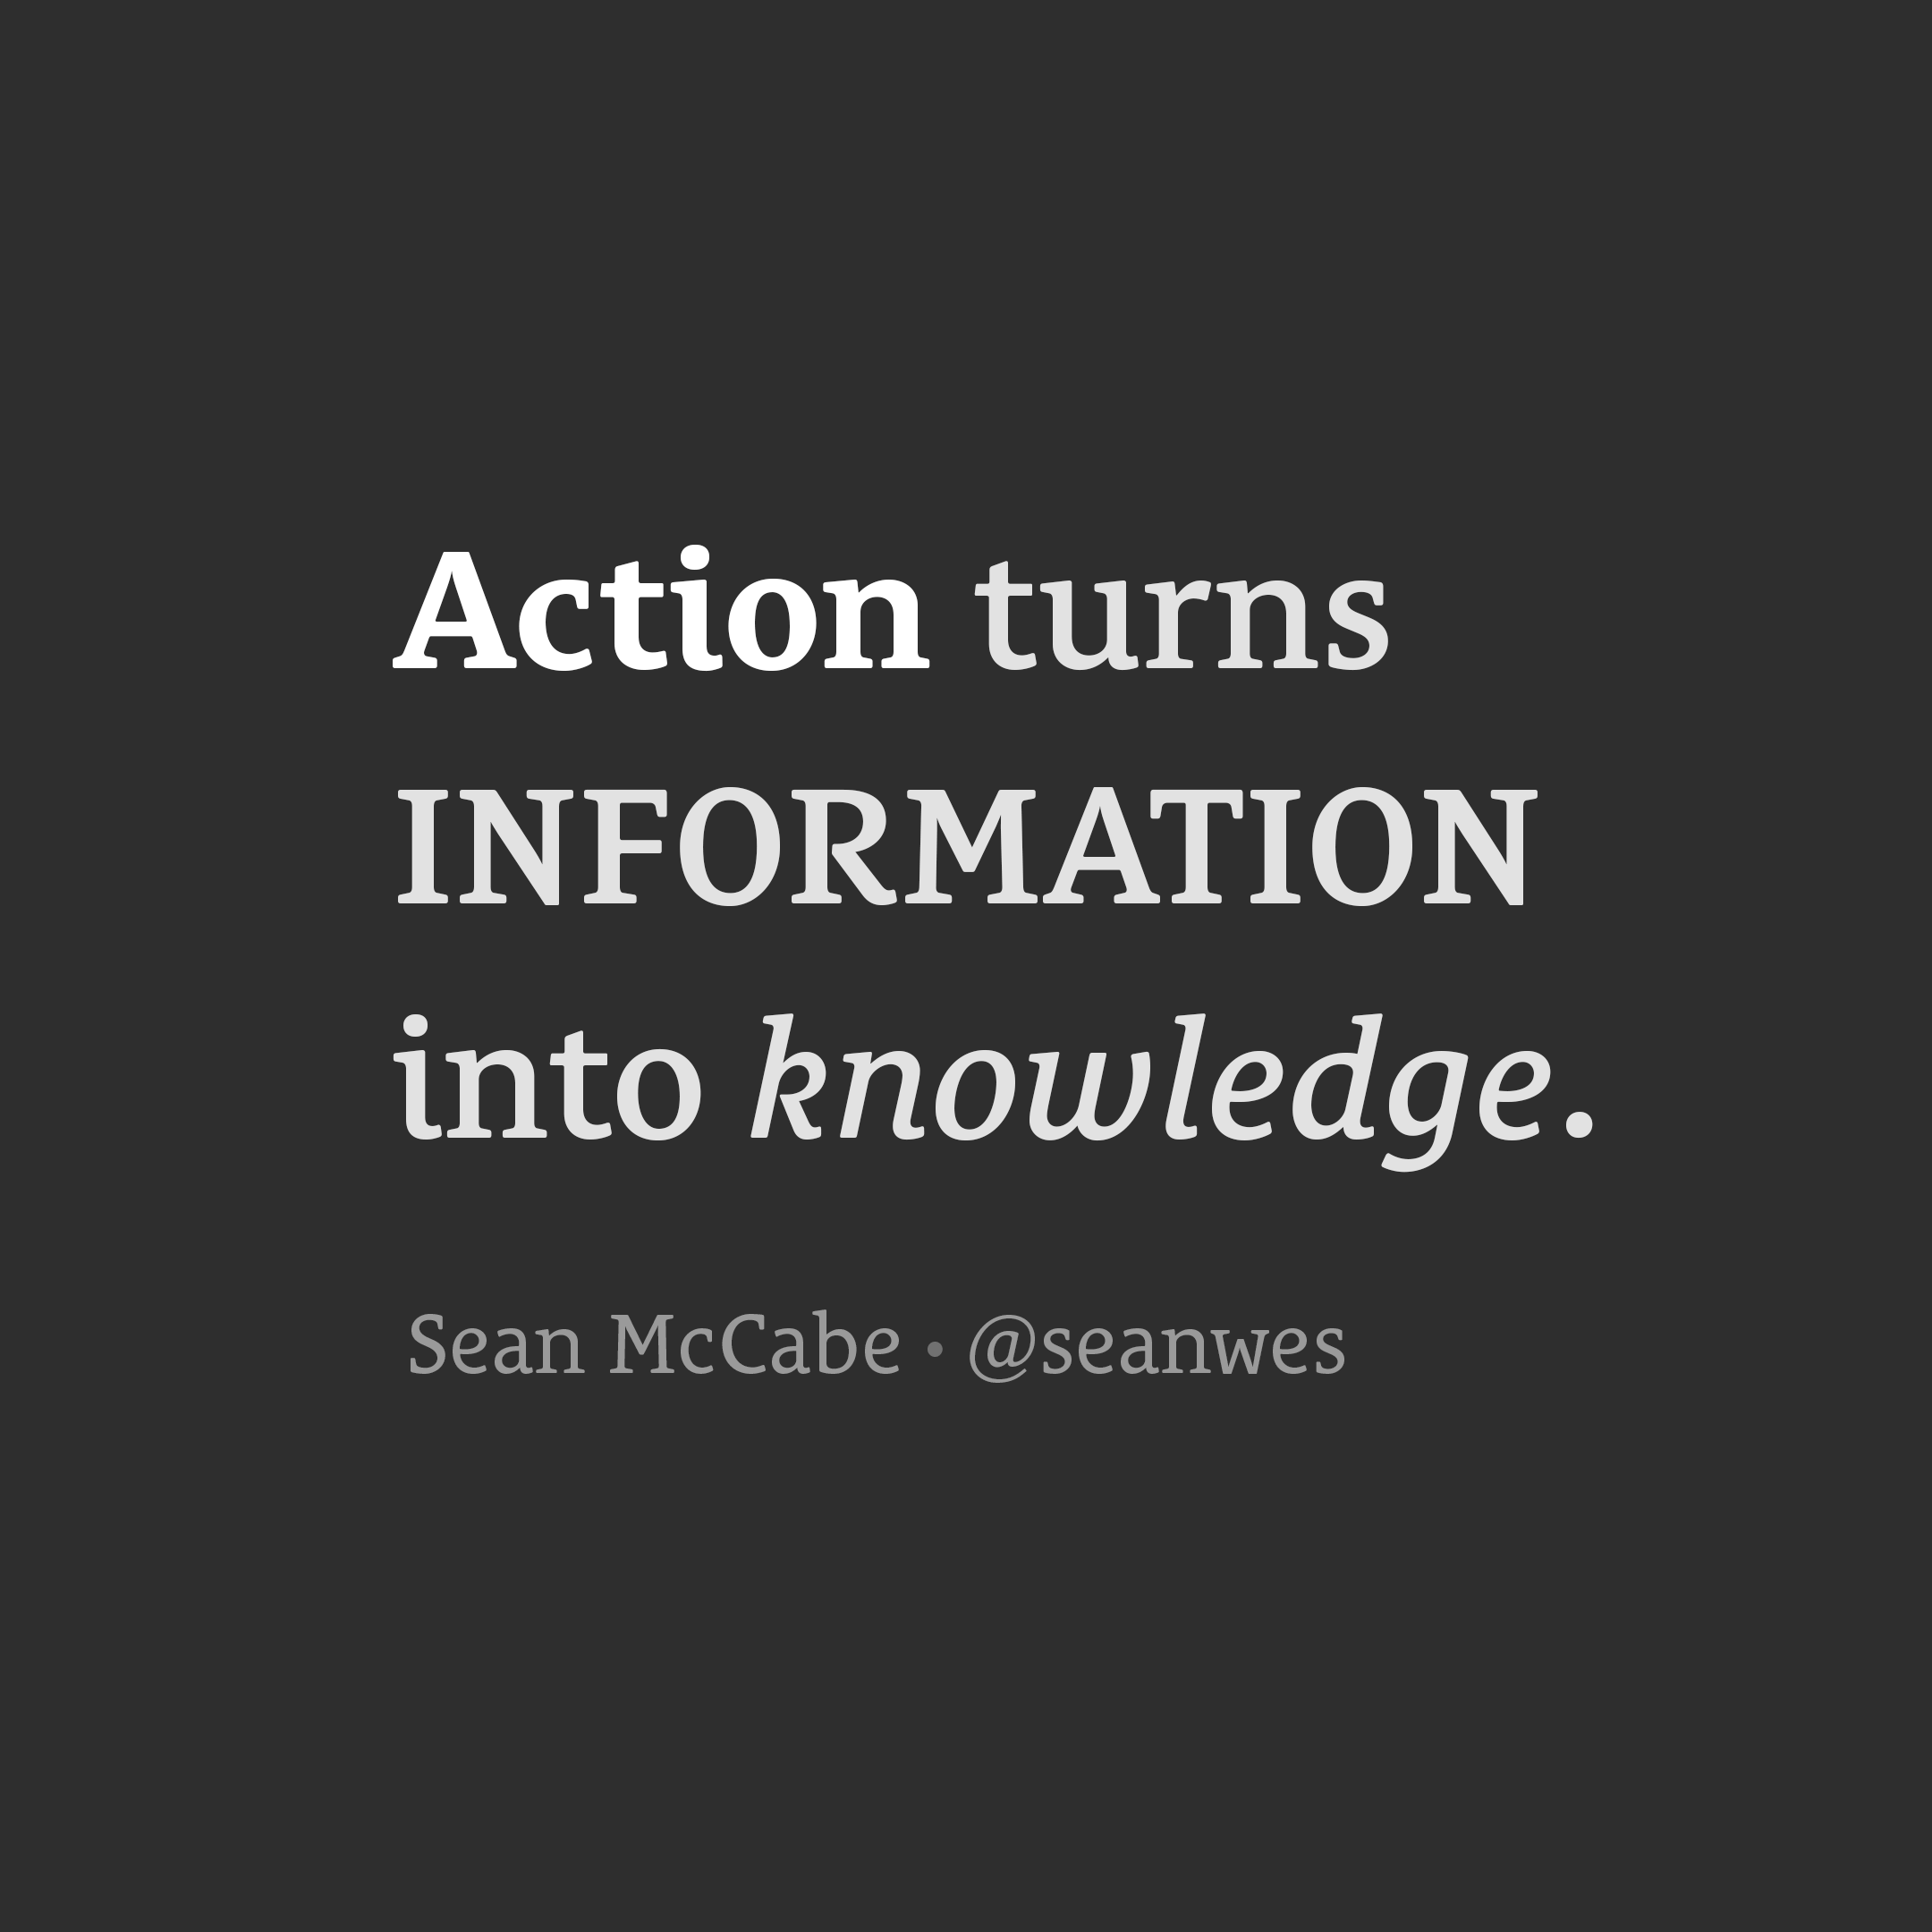 Action turns information into knowledge.